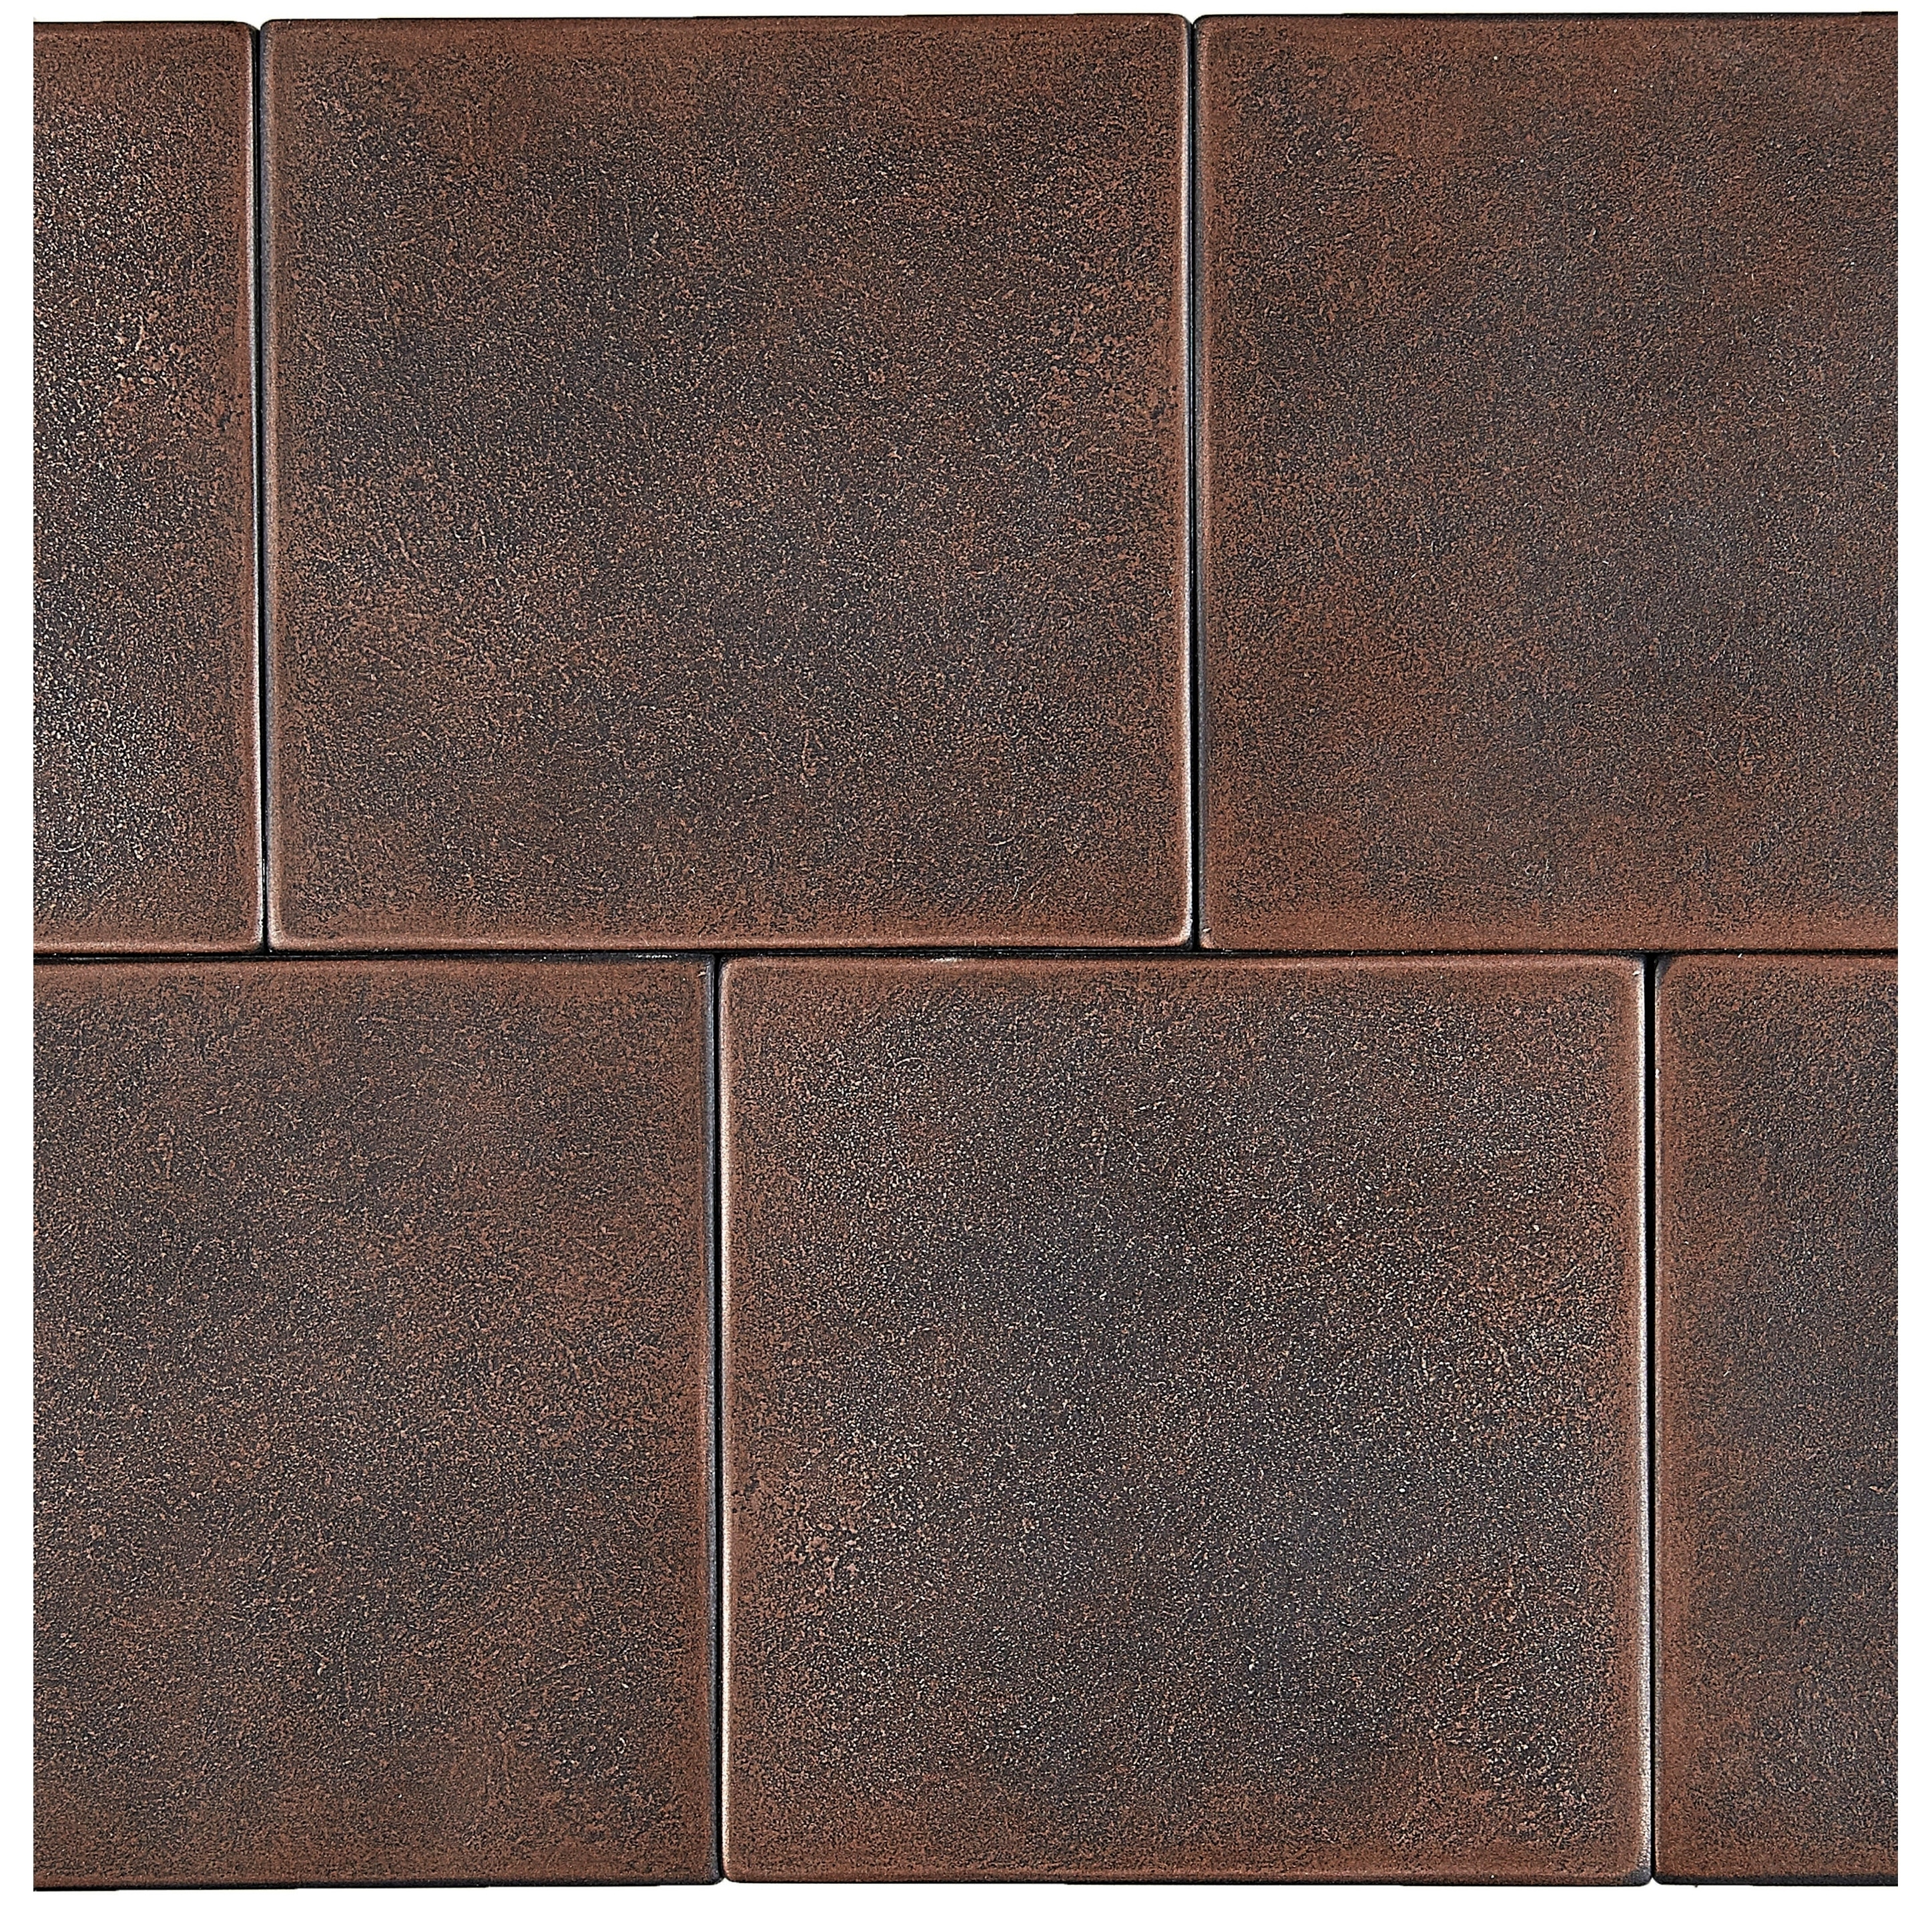 4 Inch Accent Tile